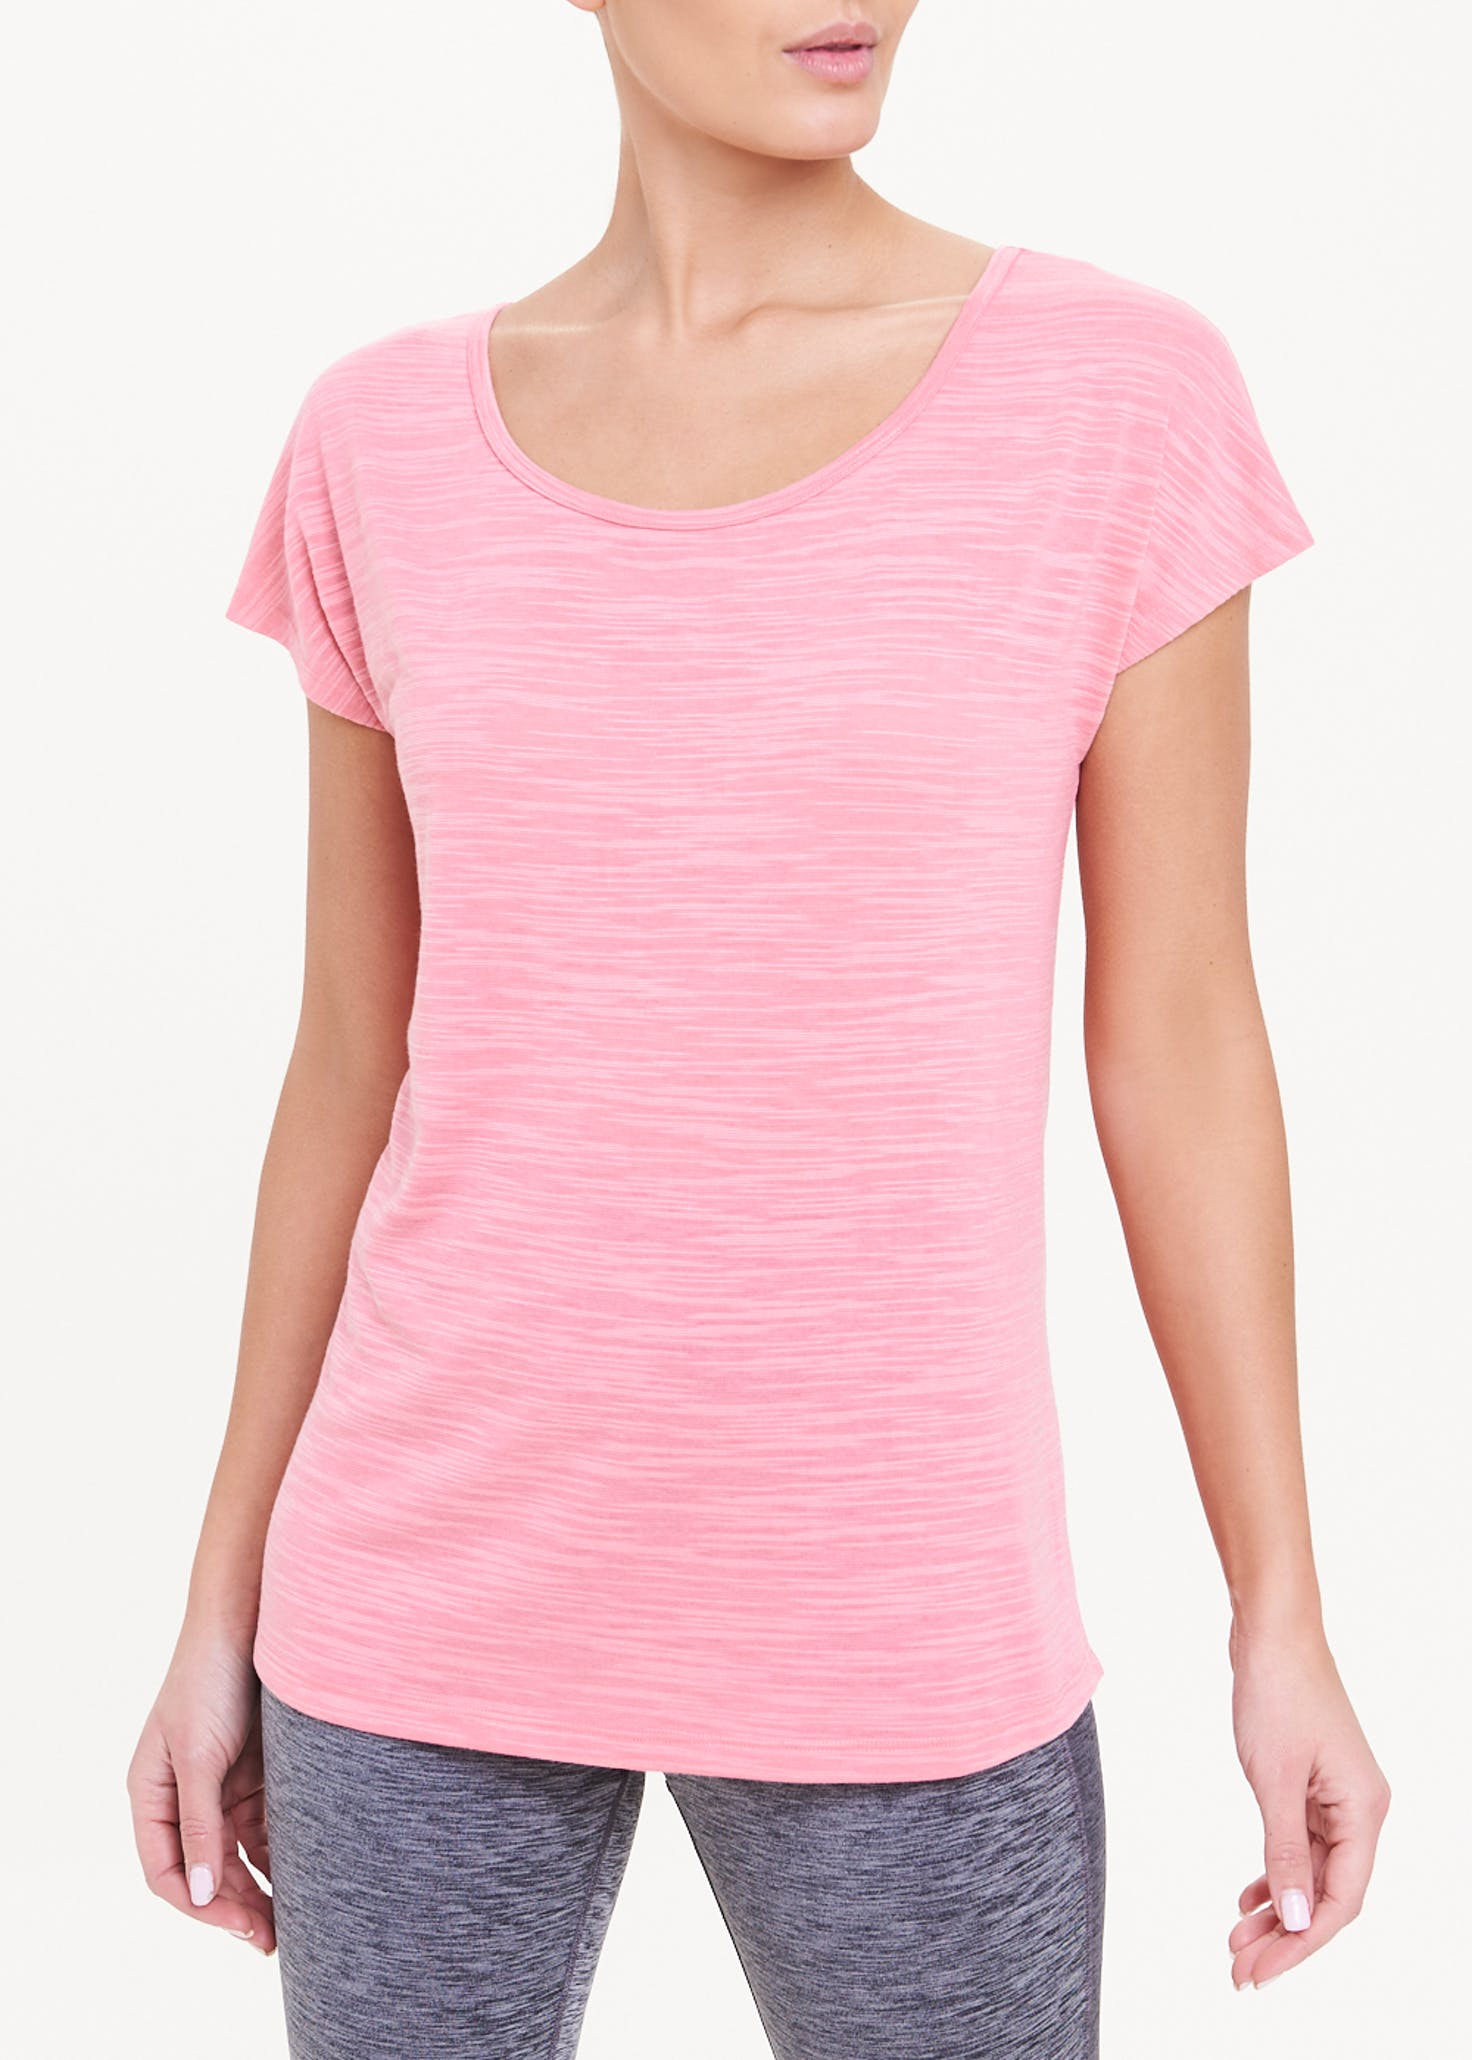 Soluxe - Pink - cross - back - gym-t-shirt-coral